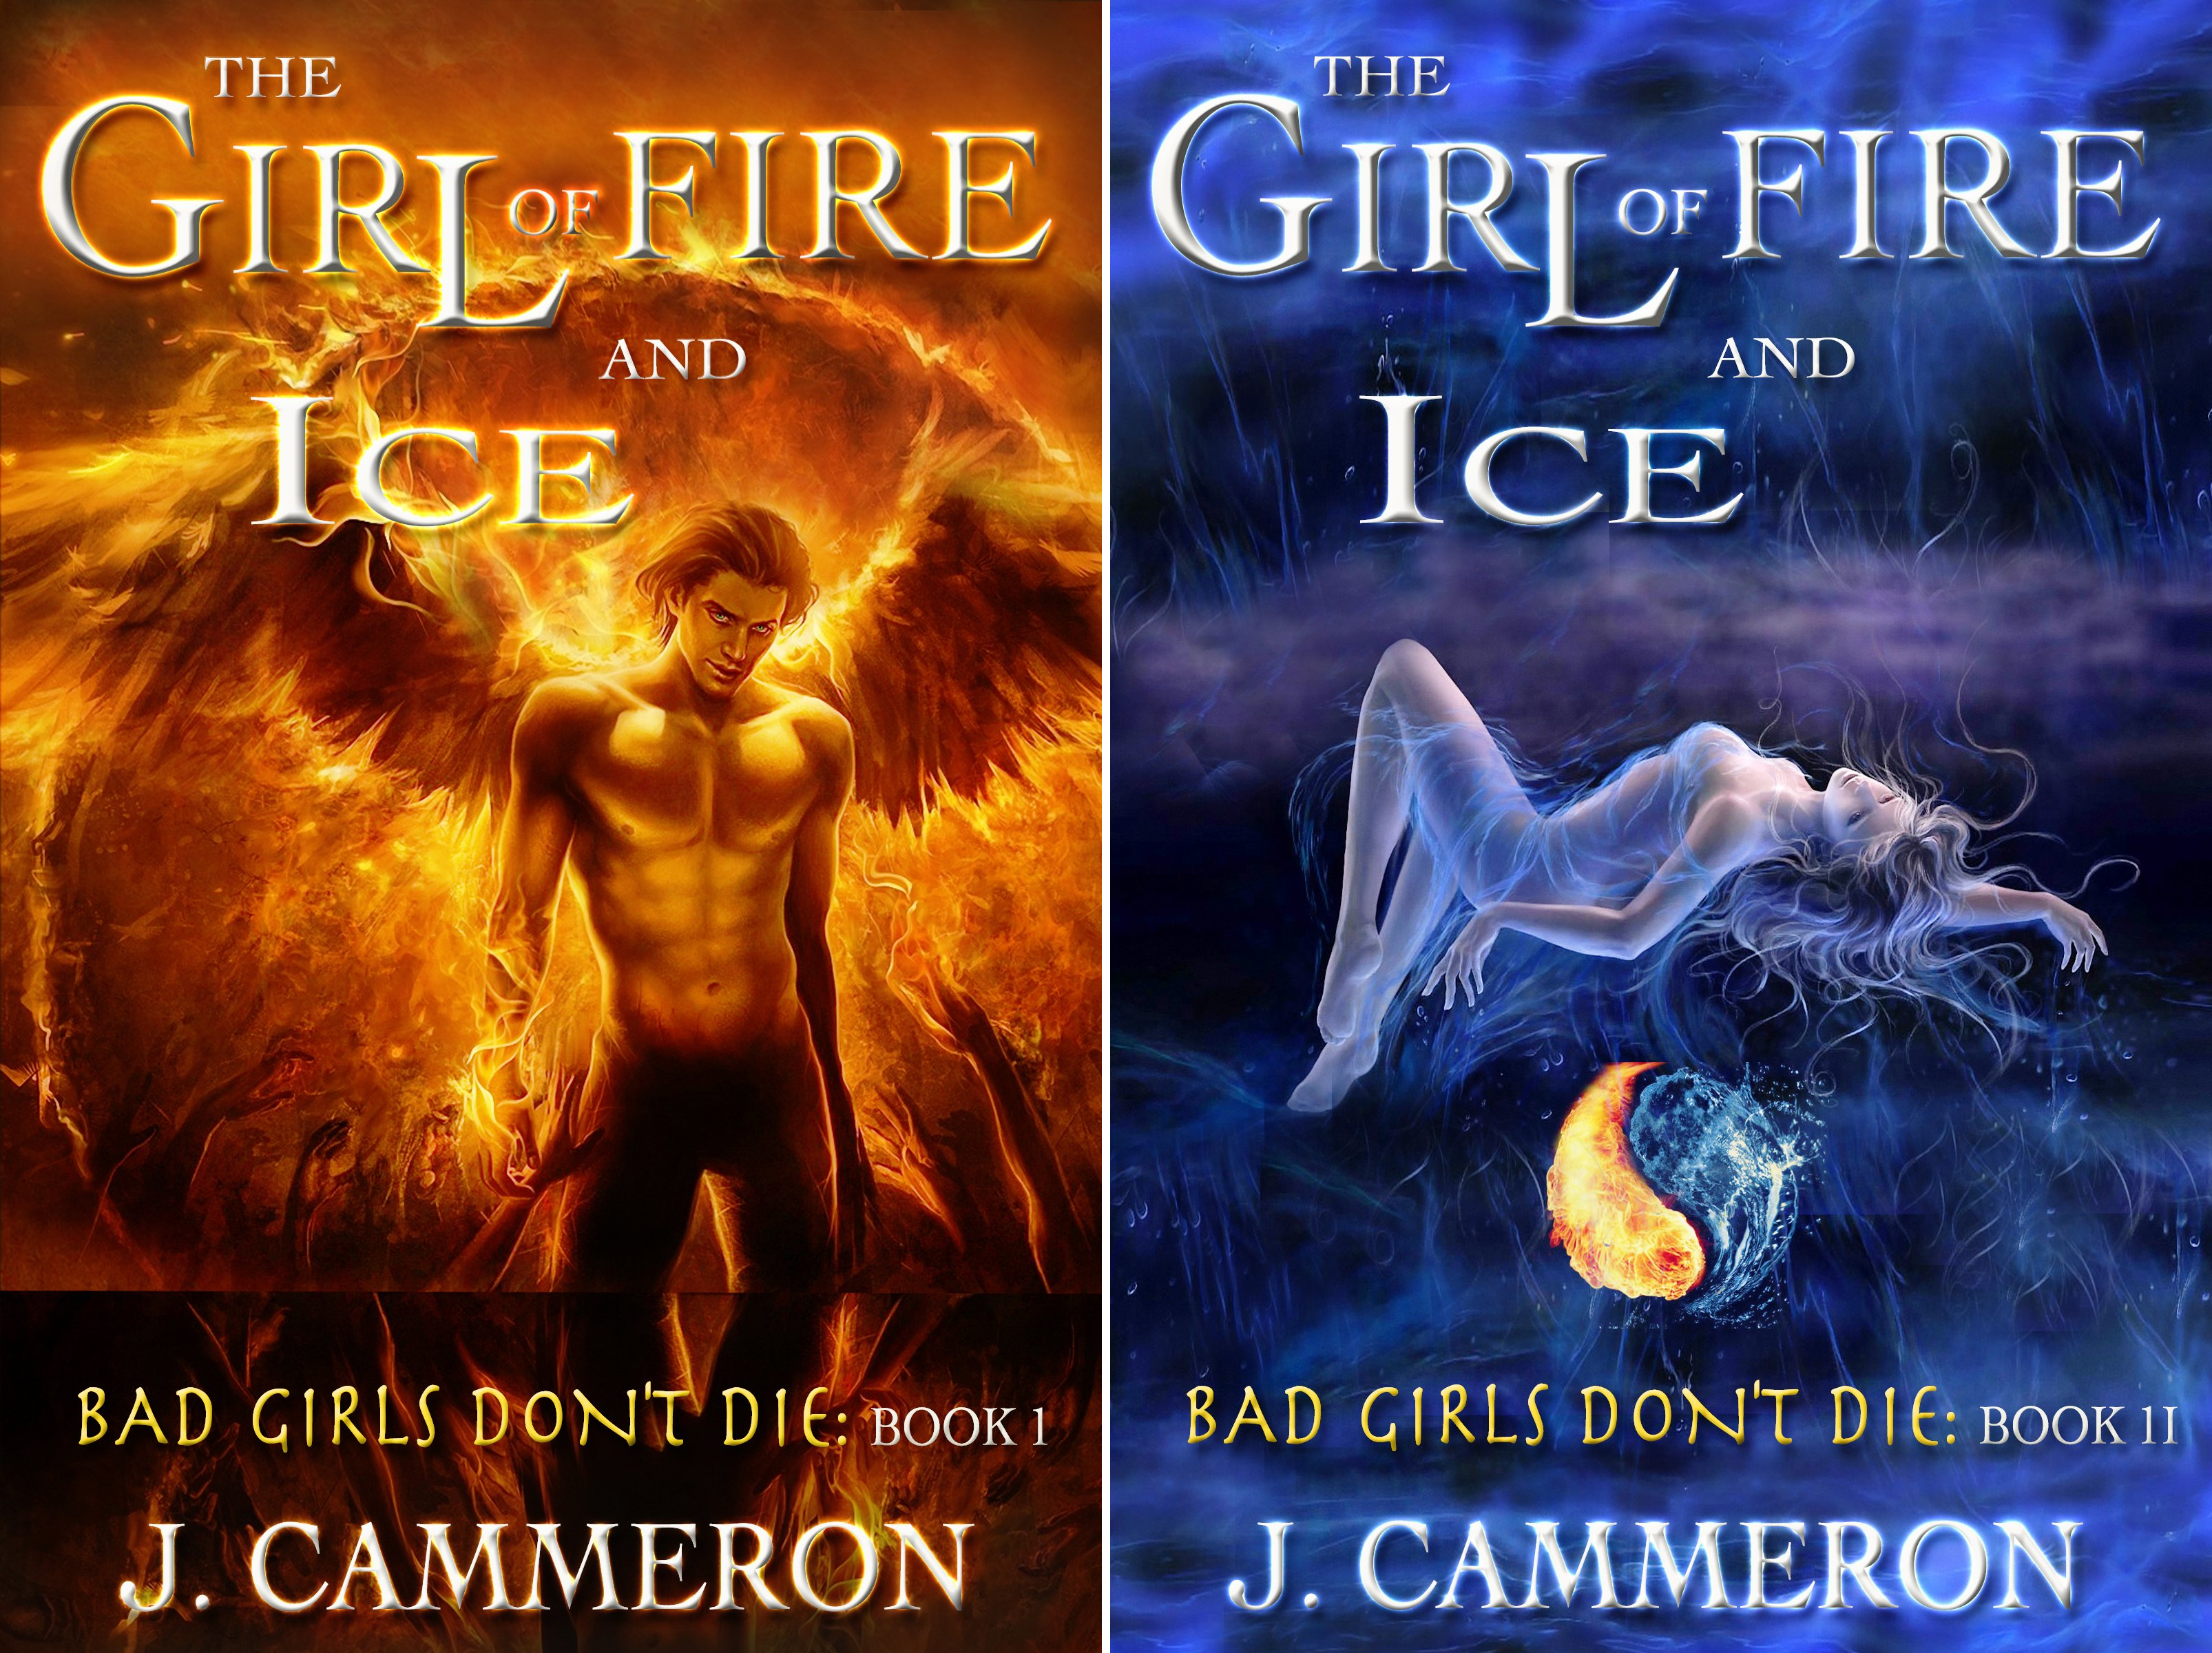 The Girl of Fire and Ice (2 Book Series)